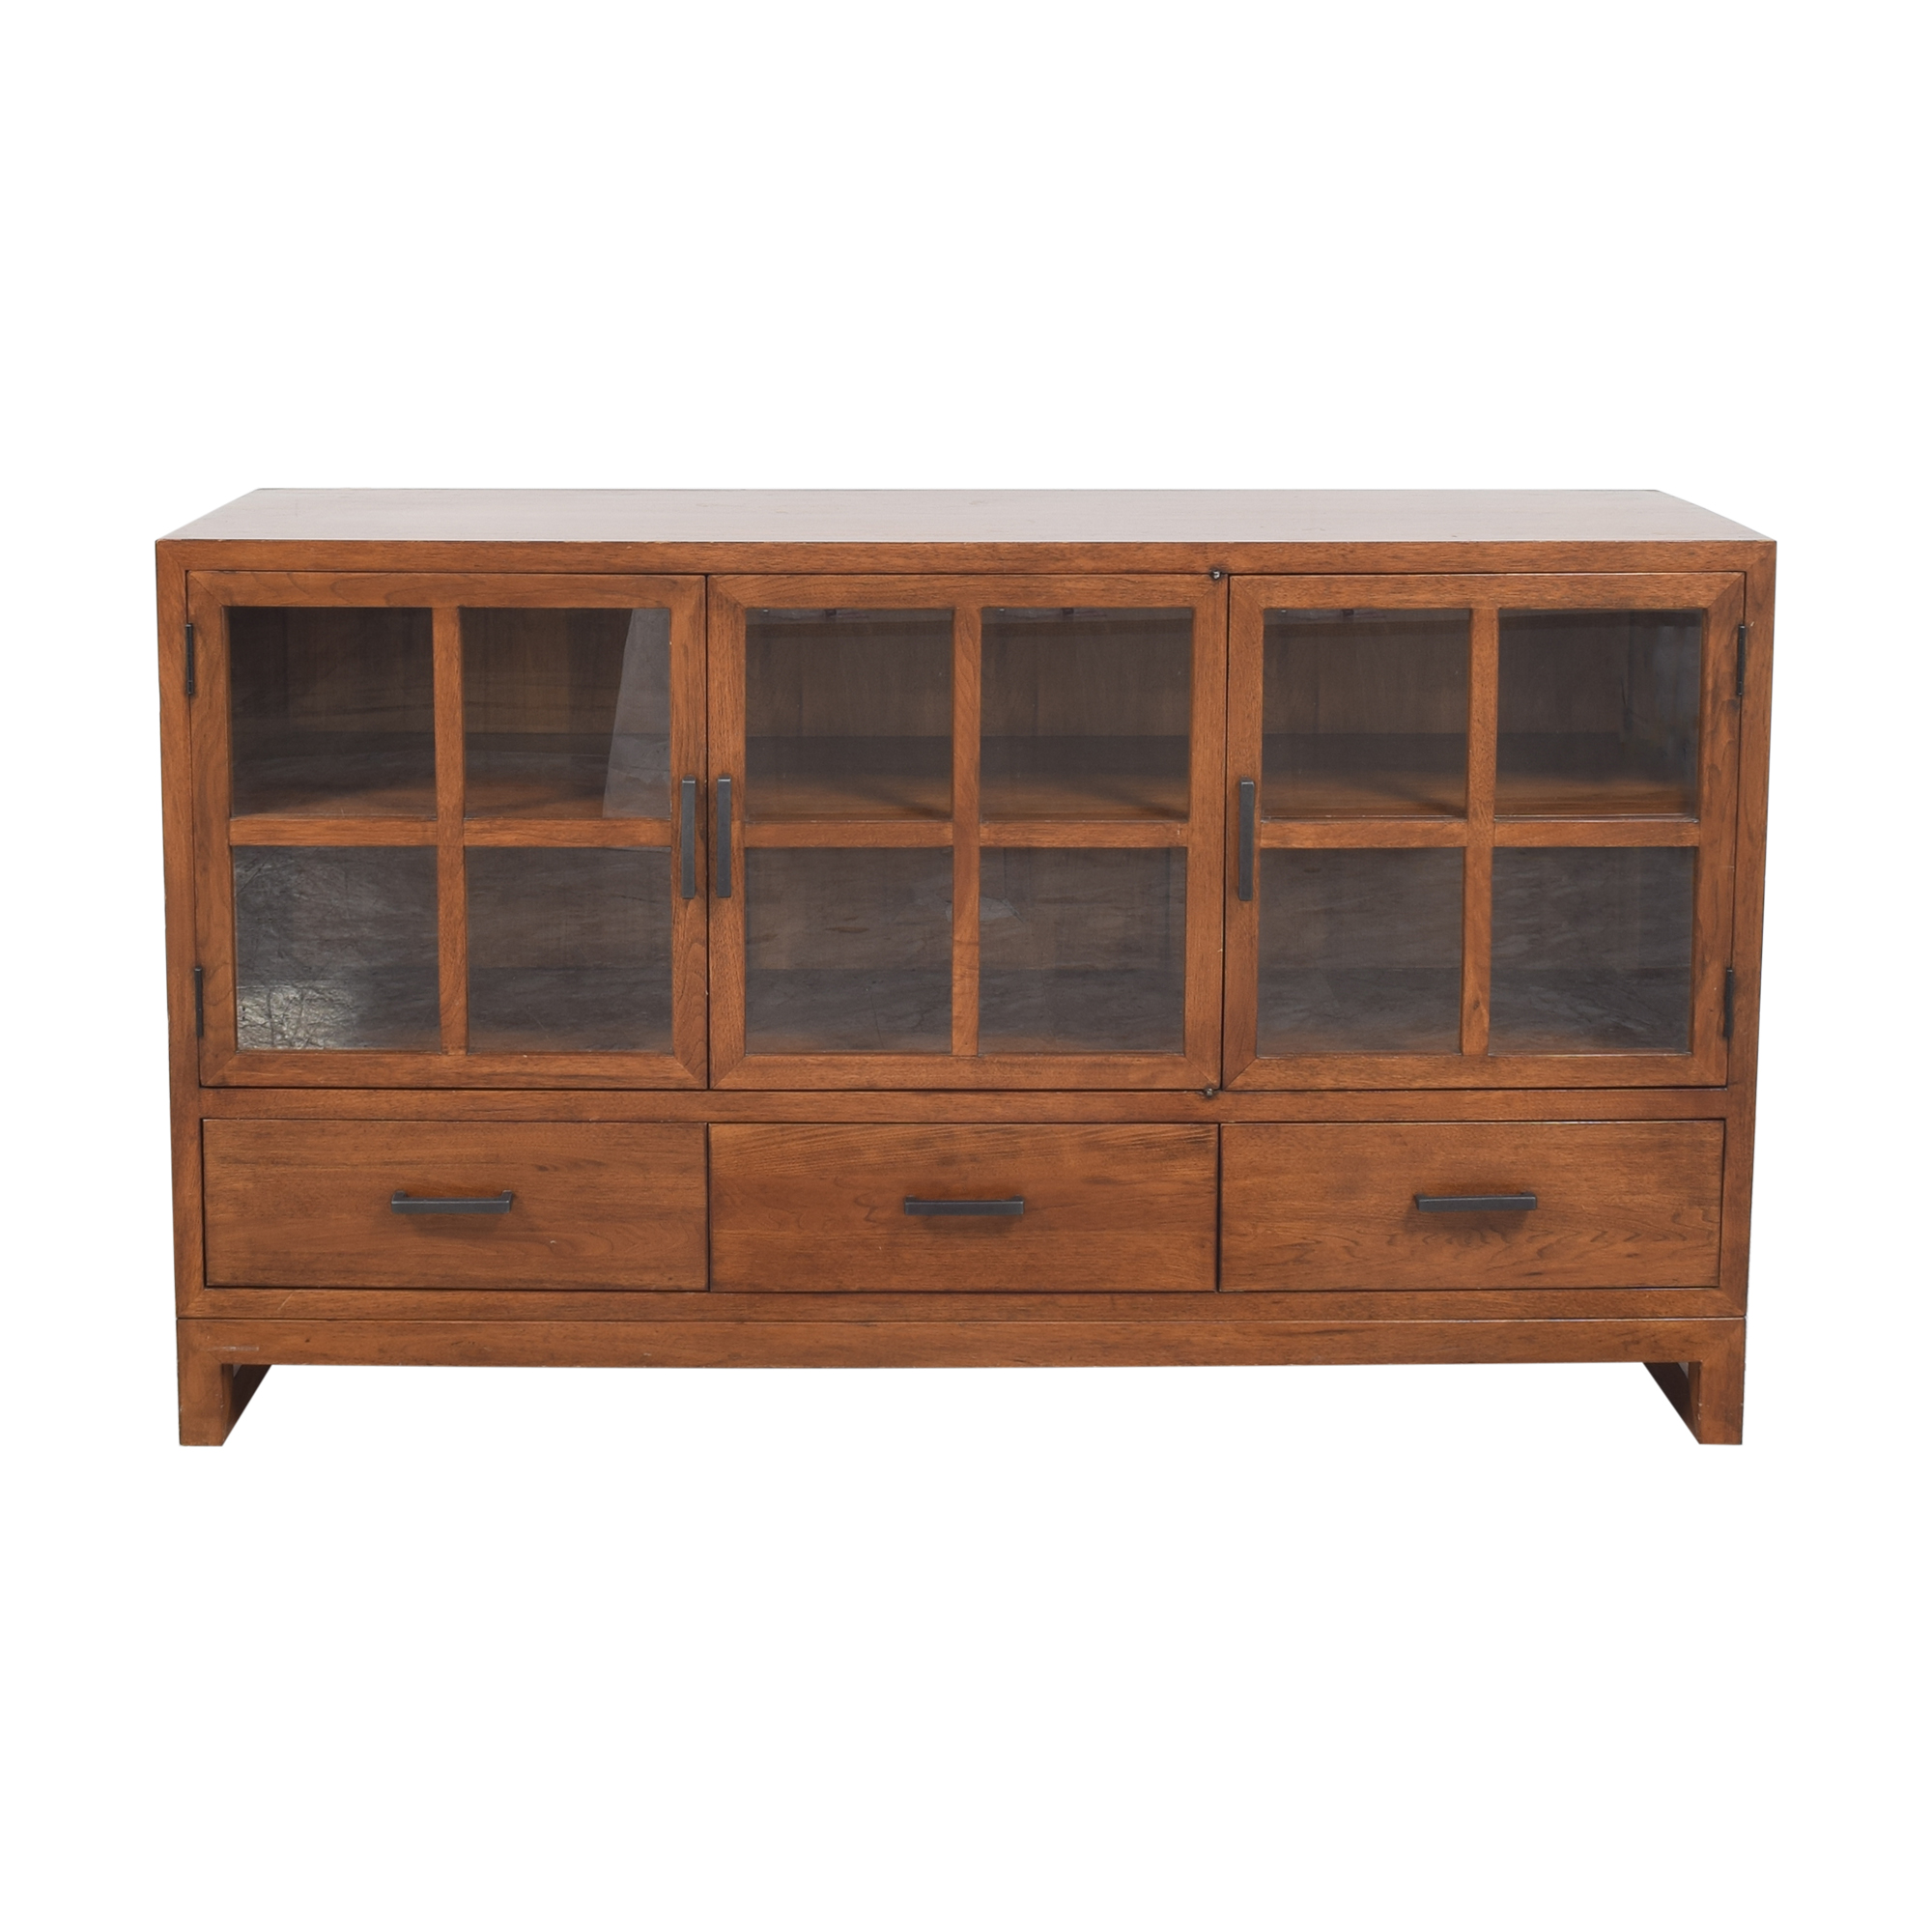 shop Crate & Barrel Lattice Sideboard by Maria Yee Crate & Barrel Storage